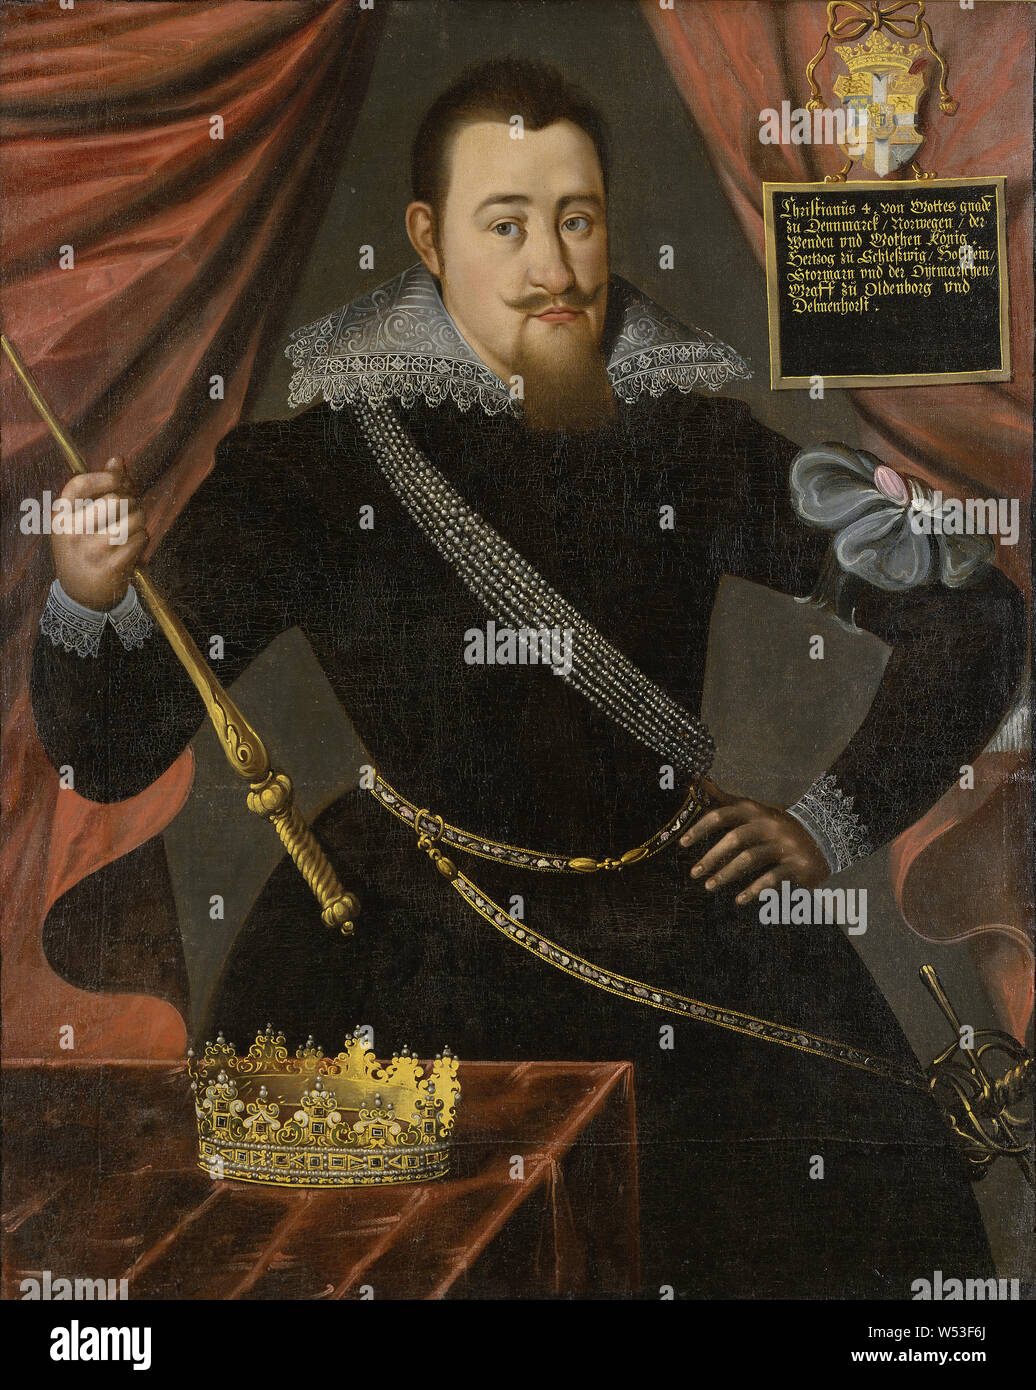 King Christian Iv Christian Iv 1577 1648 King Of Denmark And Norway Painting Oil On Canvas Height 119 Cm 46 8 Inches Width 96 Cm 37 7 Inches Stock Photo Alamy Whenever you need to supply your height in centimetres rather than feet and inches here is very helpfull height converter. https www alamy com king christian iv christian iv 1577 1648 king of denmark and norway painting oil on canvas height 119 cm 468 inches width 96 cm 377 inches image261306602 html